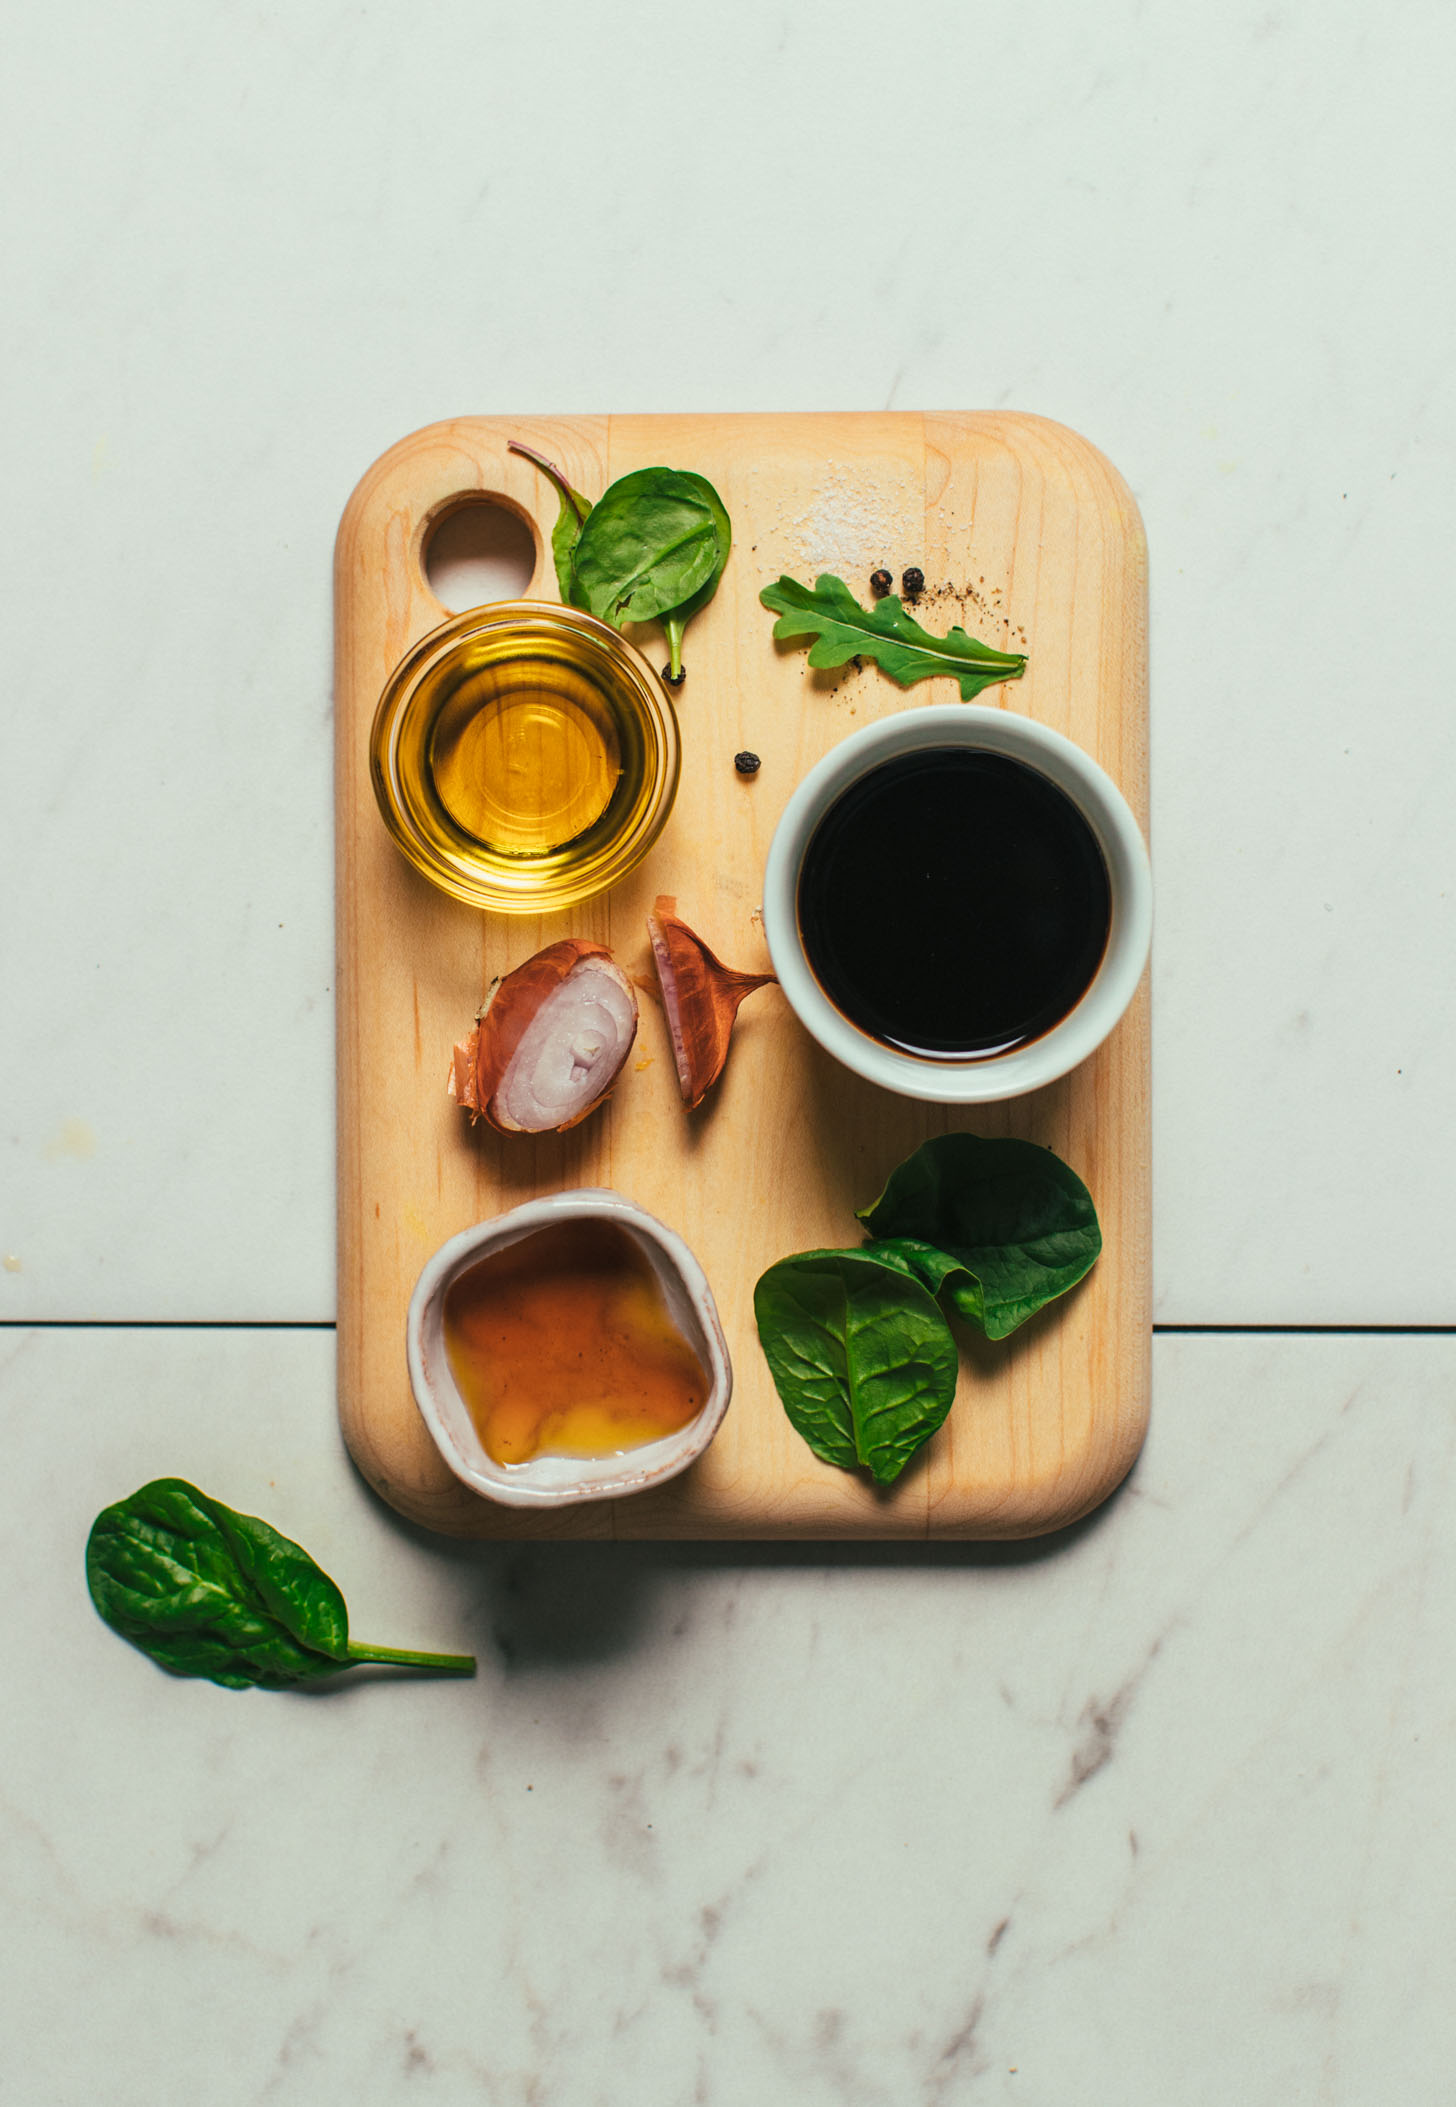 Wood cutting board filled with ingredients for making our balsamic vinaigrette recipe